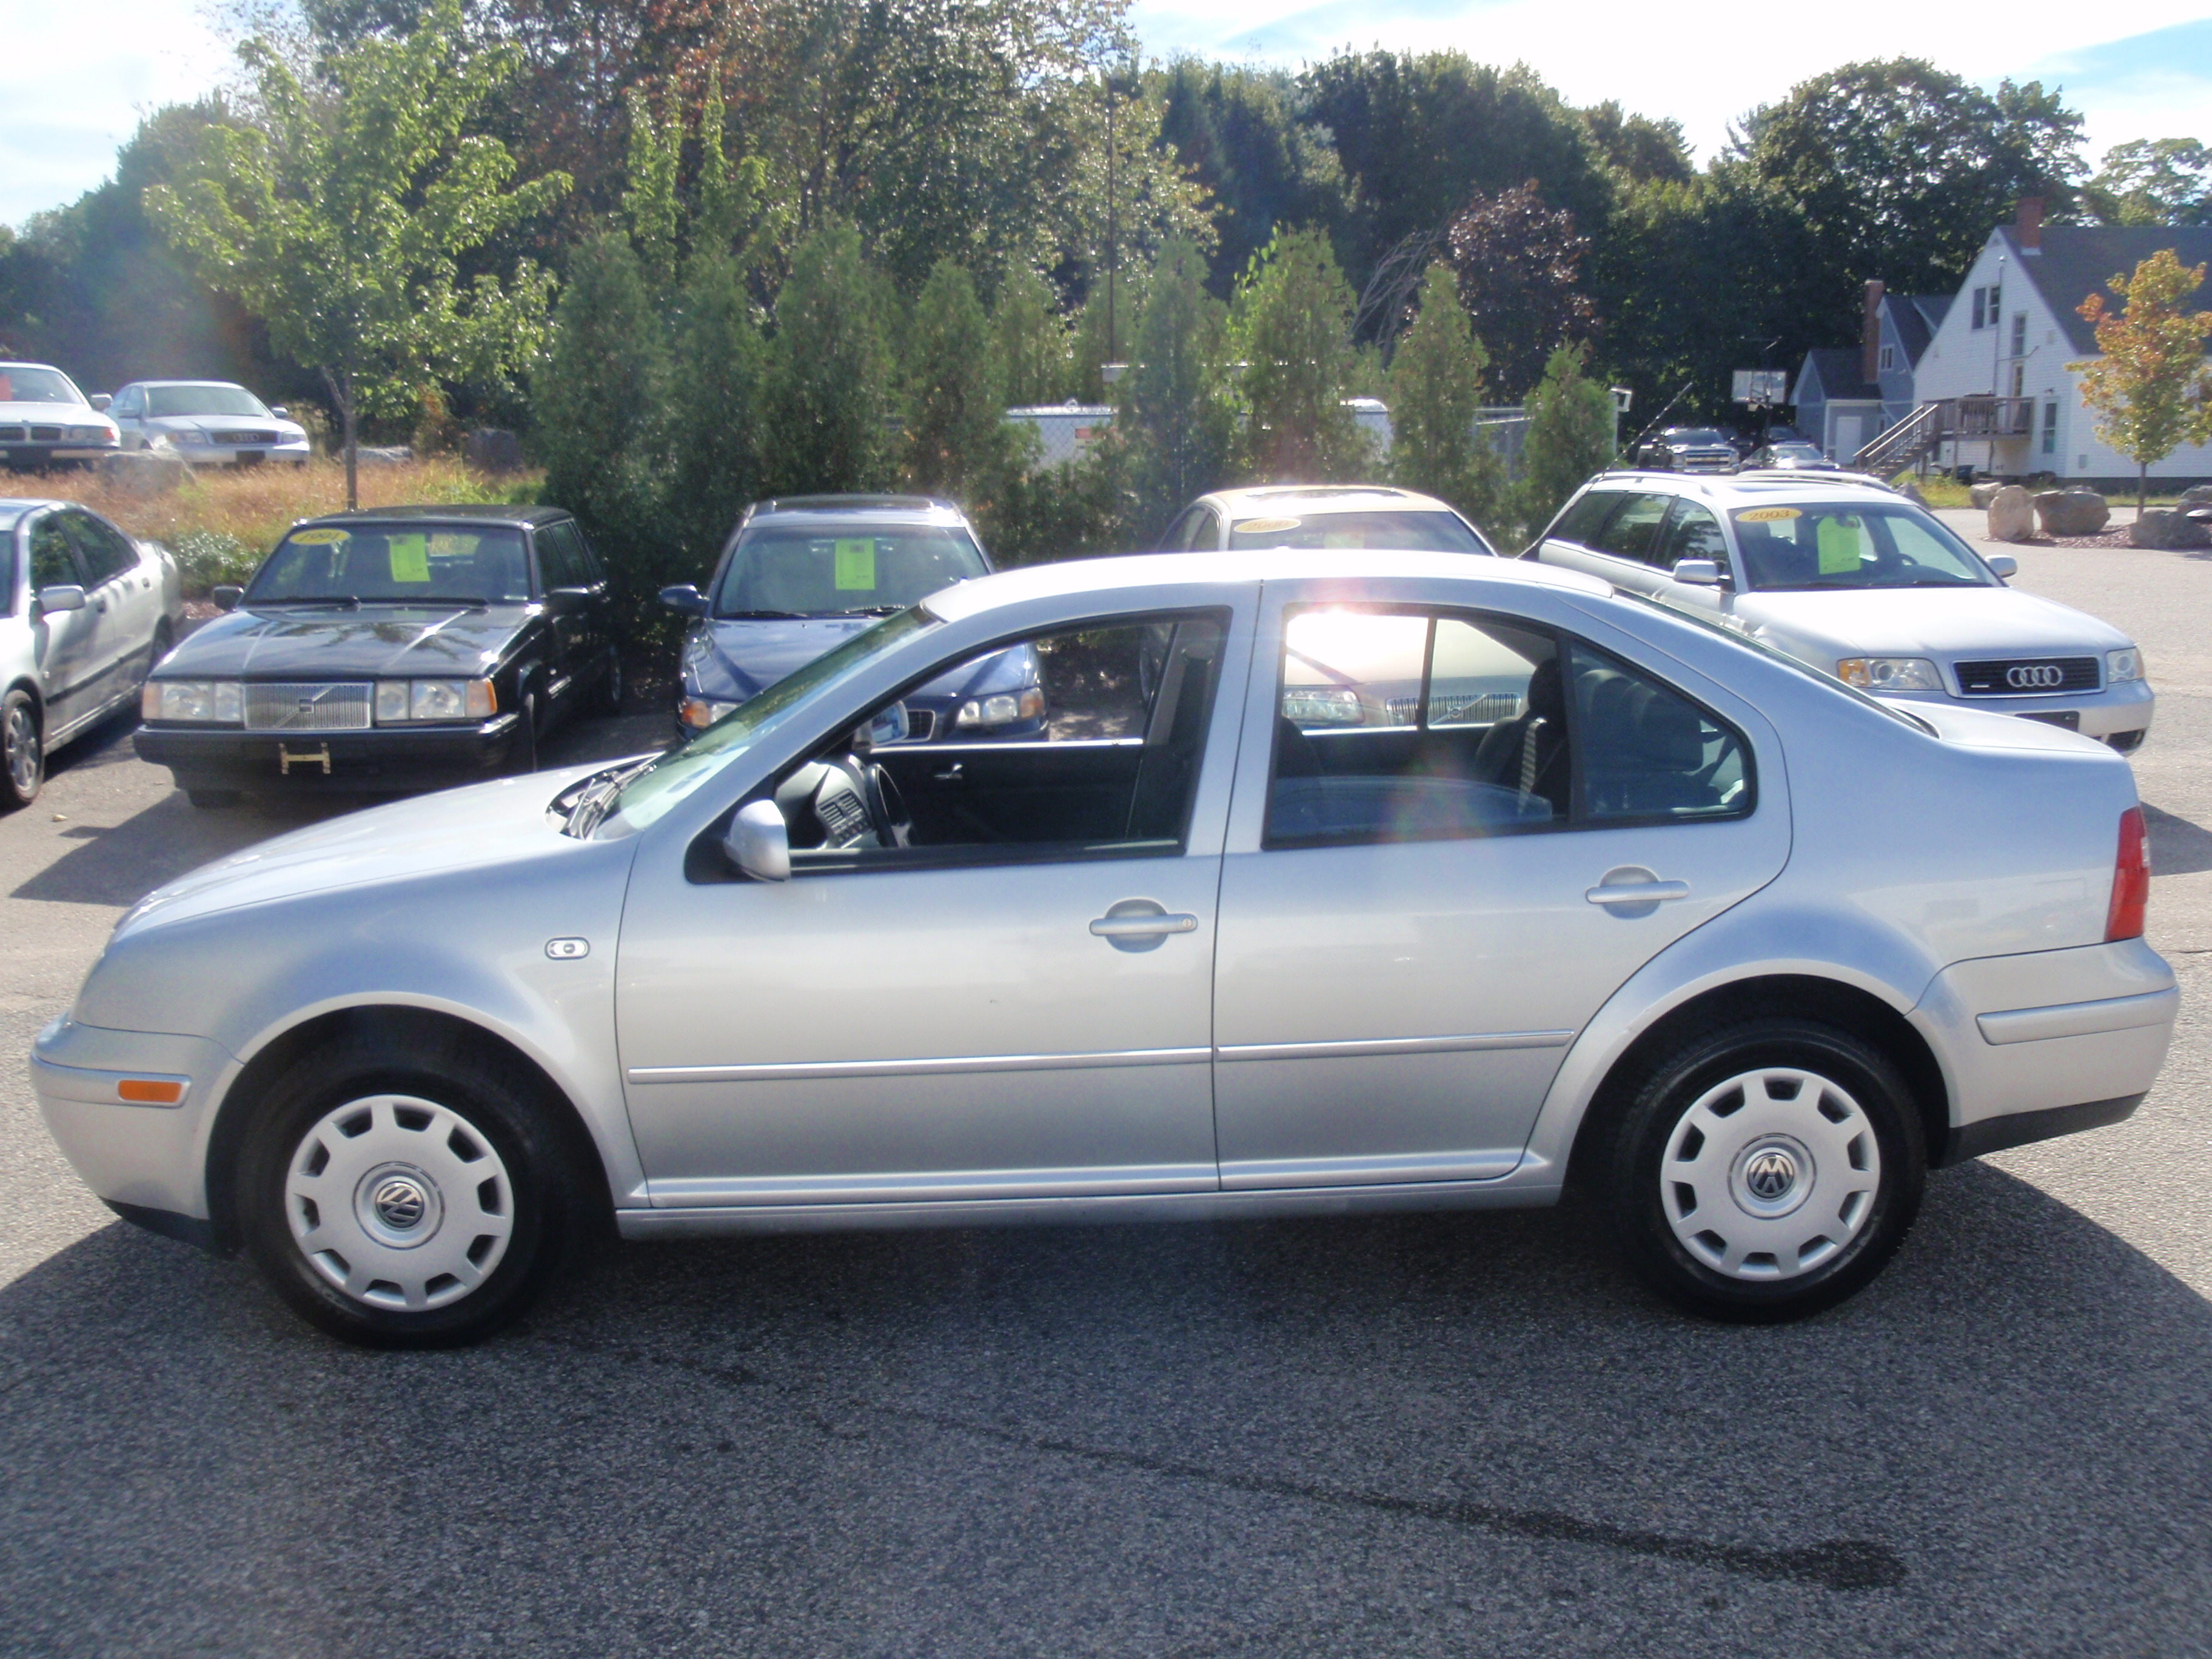 gls volkswagen jetta pic cars overview sale cargurus for